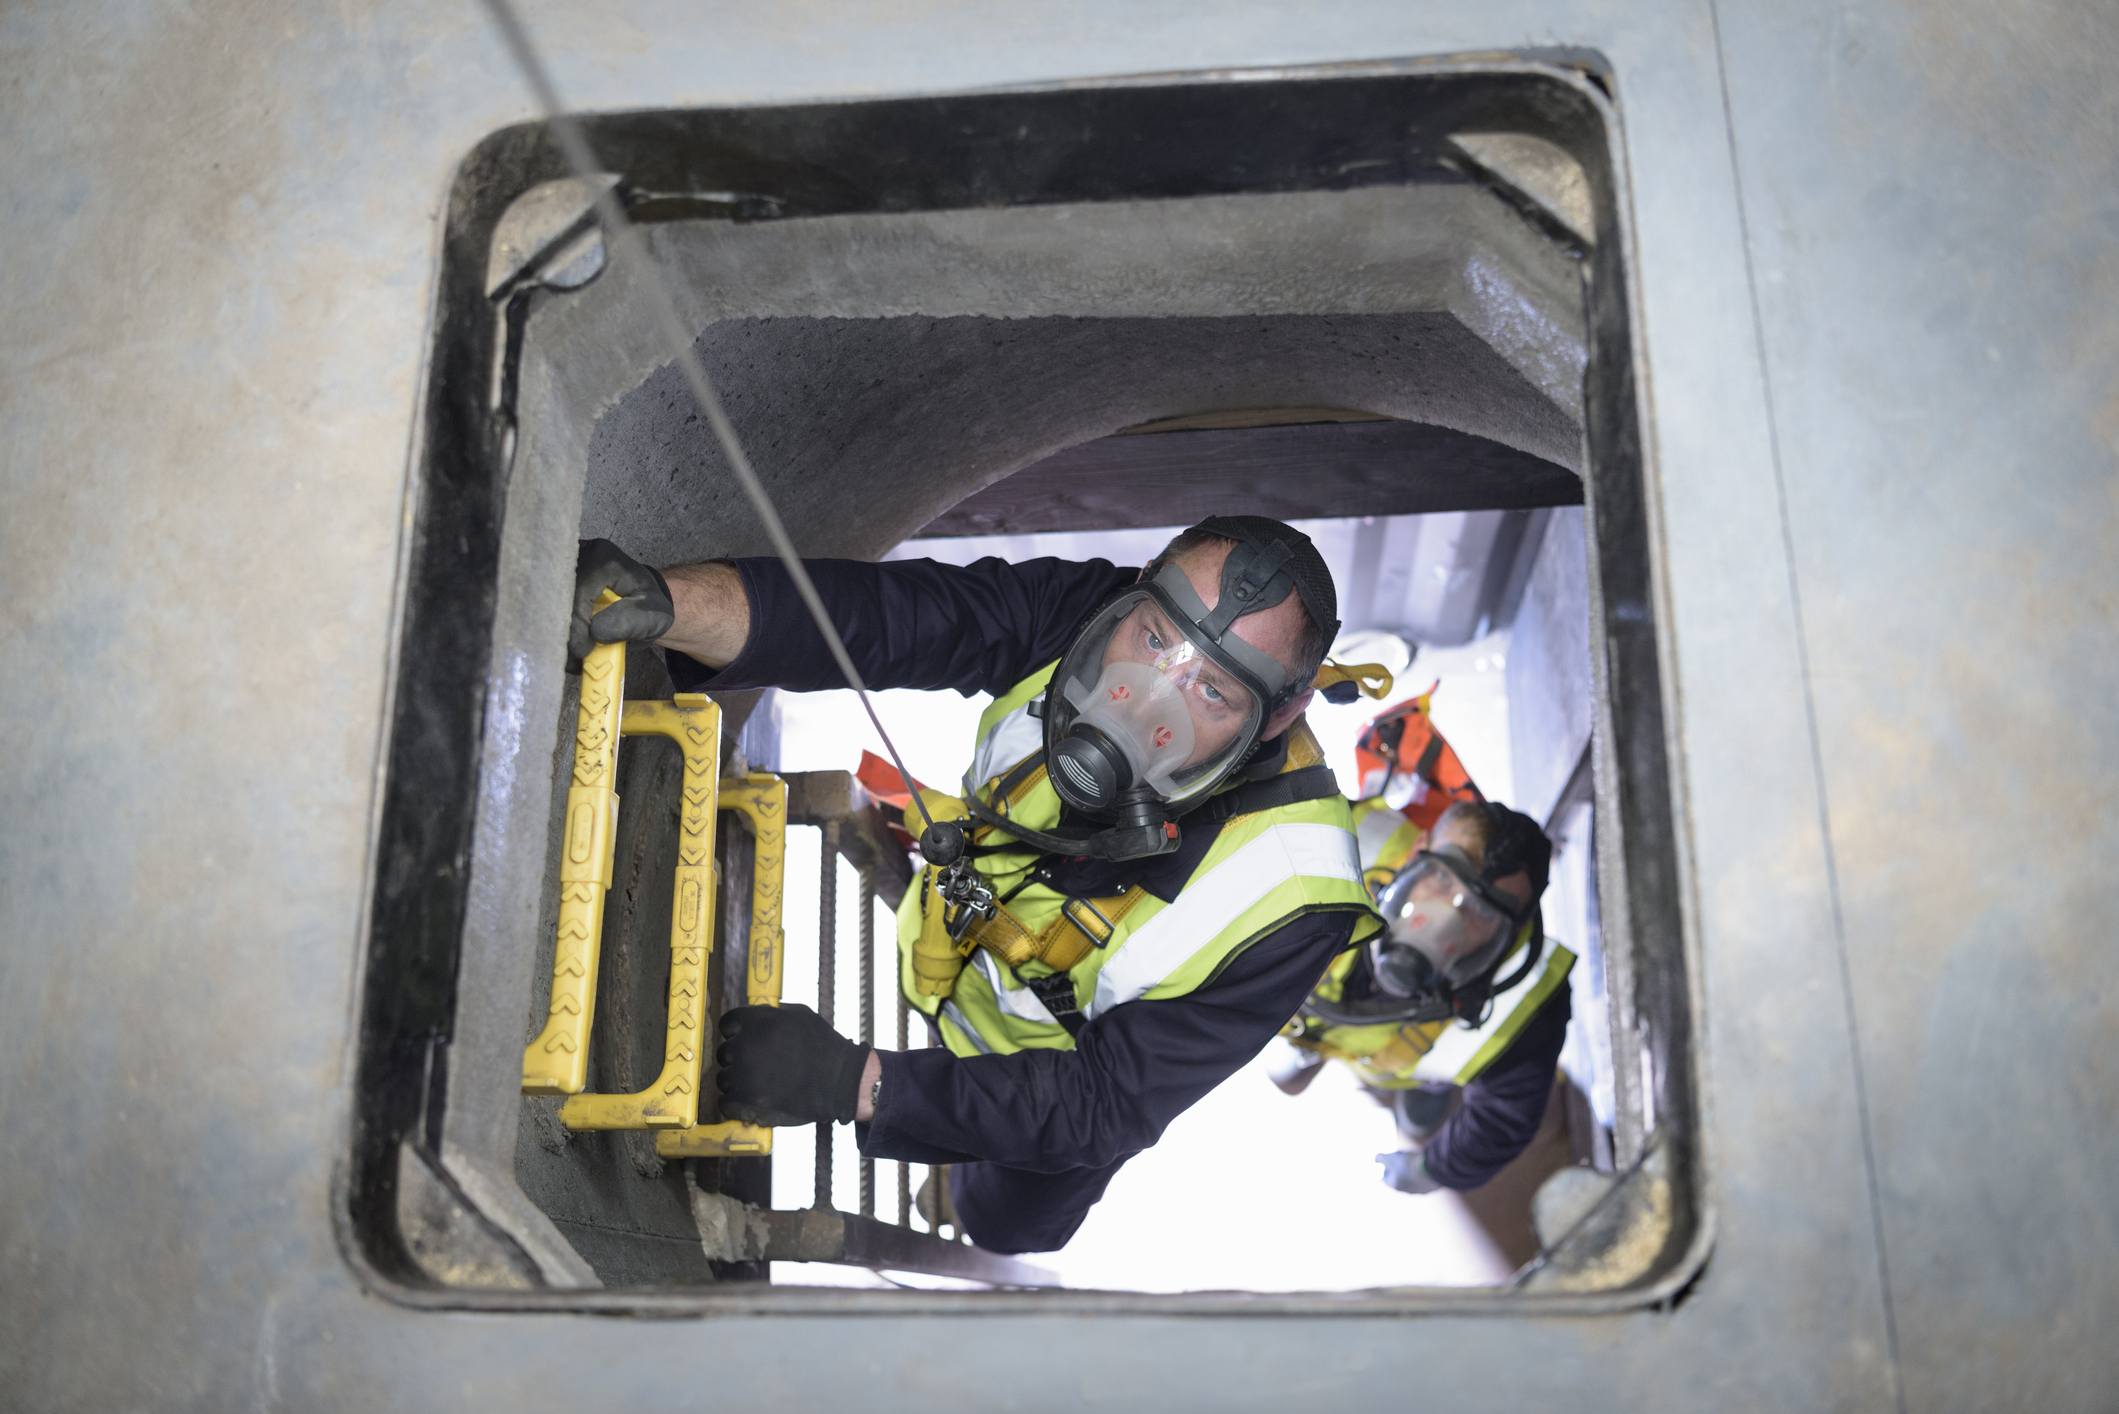 apprentice-builders-training-in-confined-space-in-training-facilityjpg